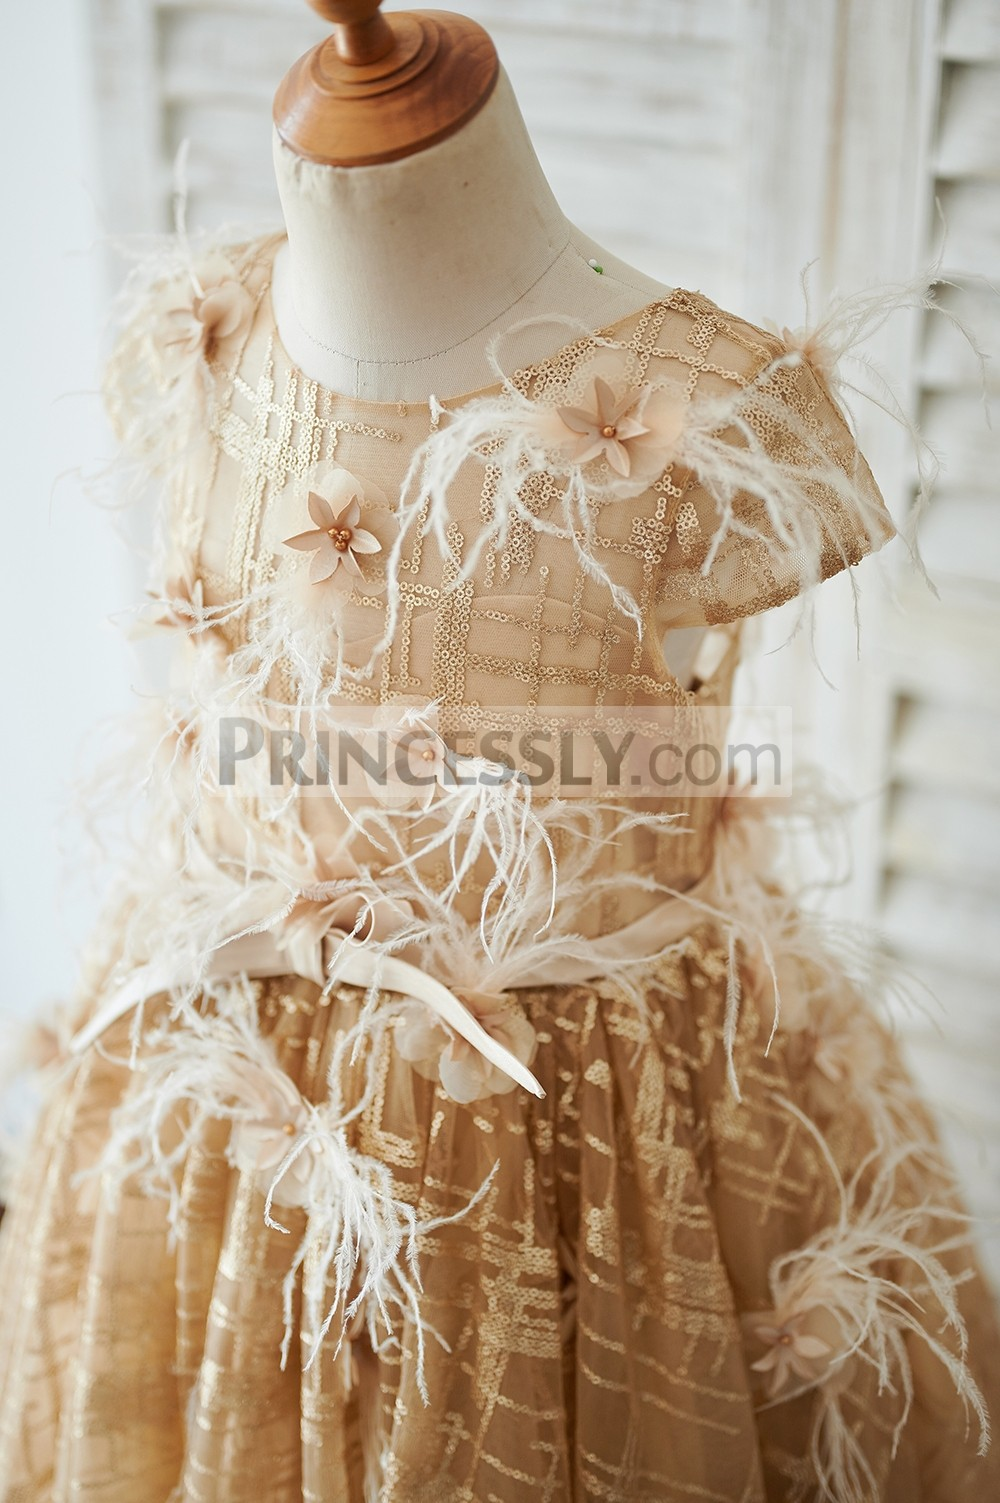 Cap sleeves inside sweetheart sequined bodice with belt